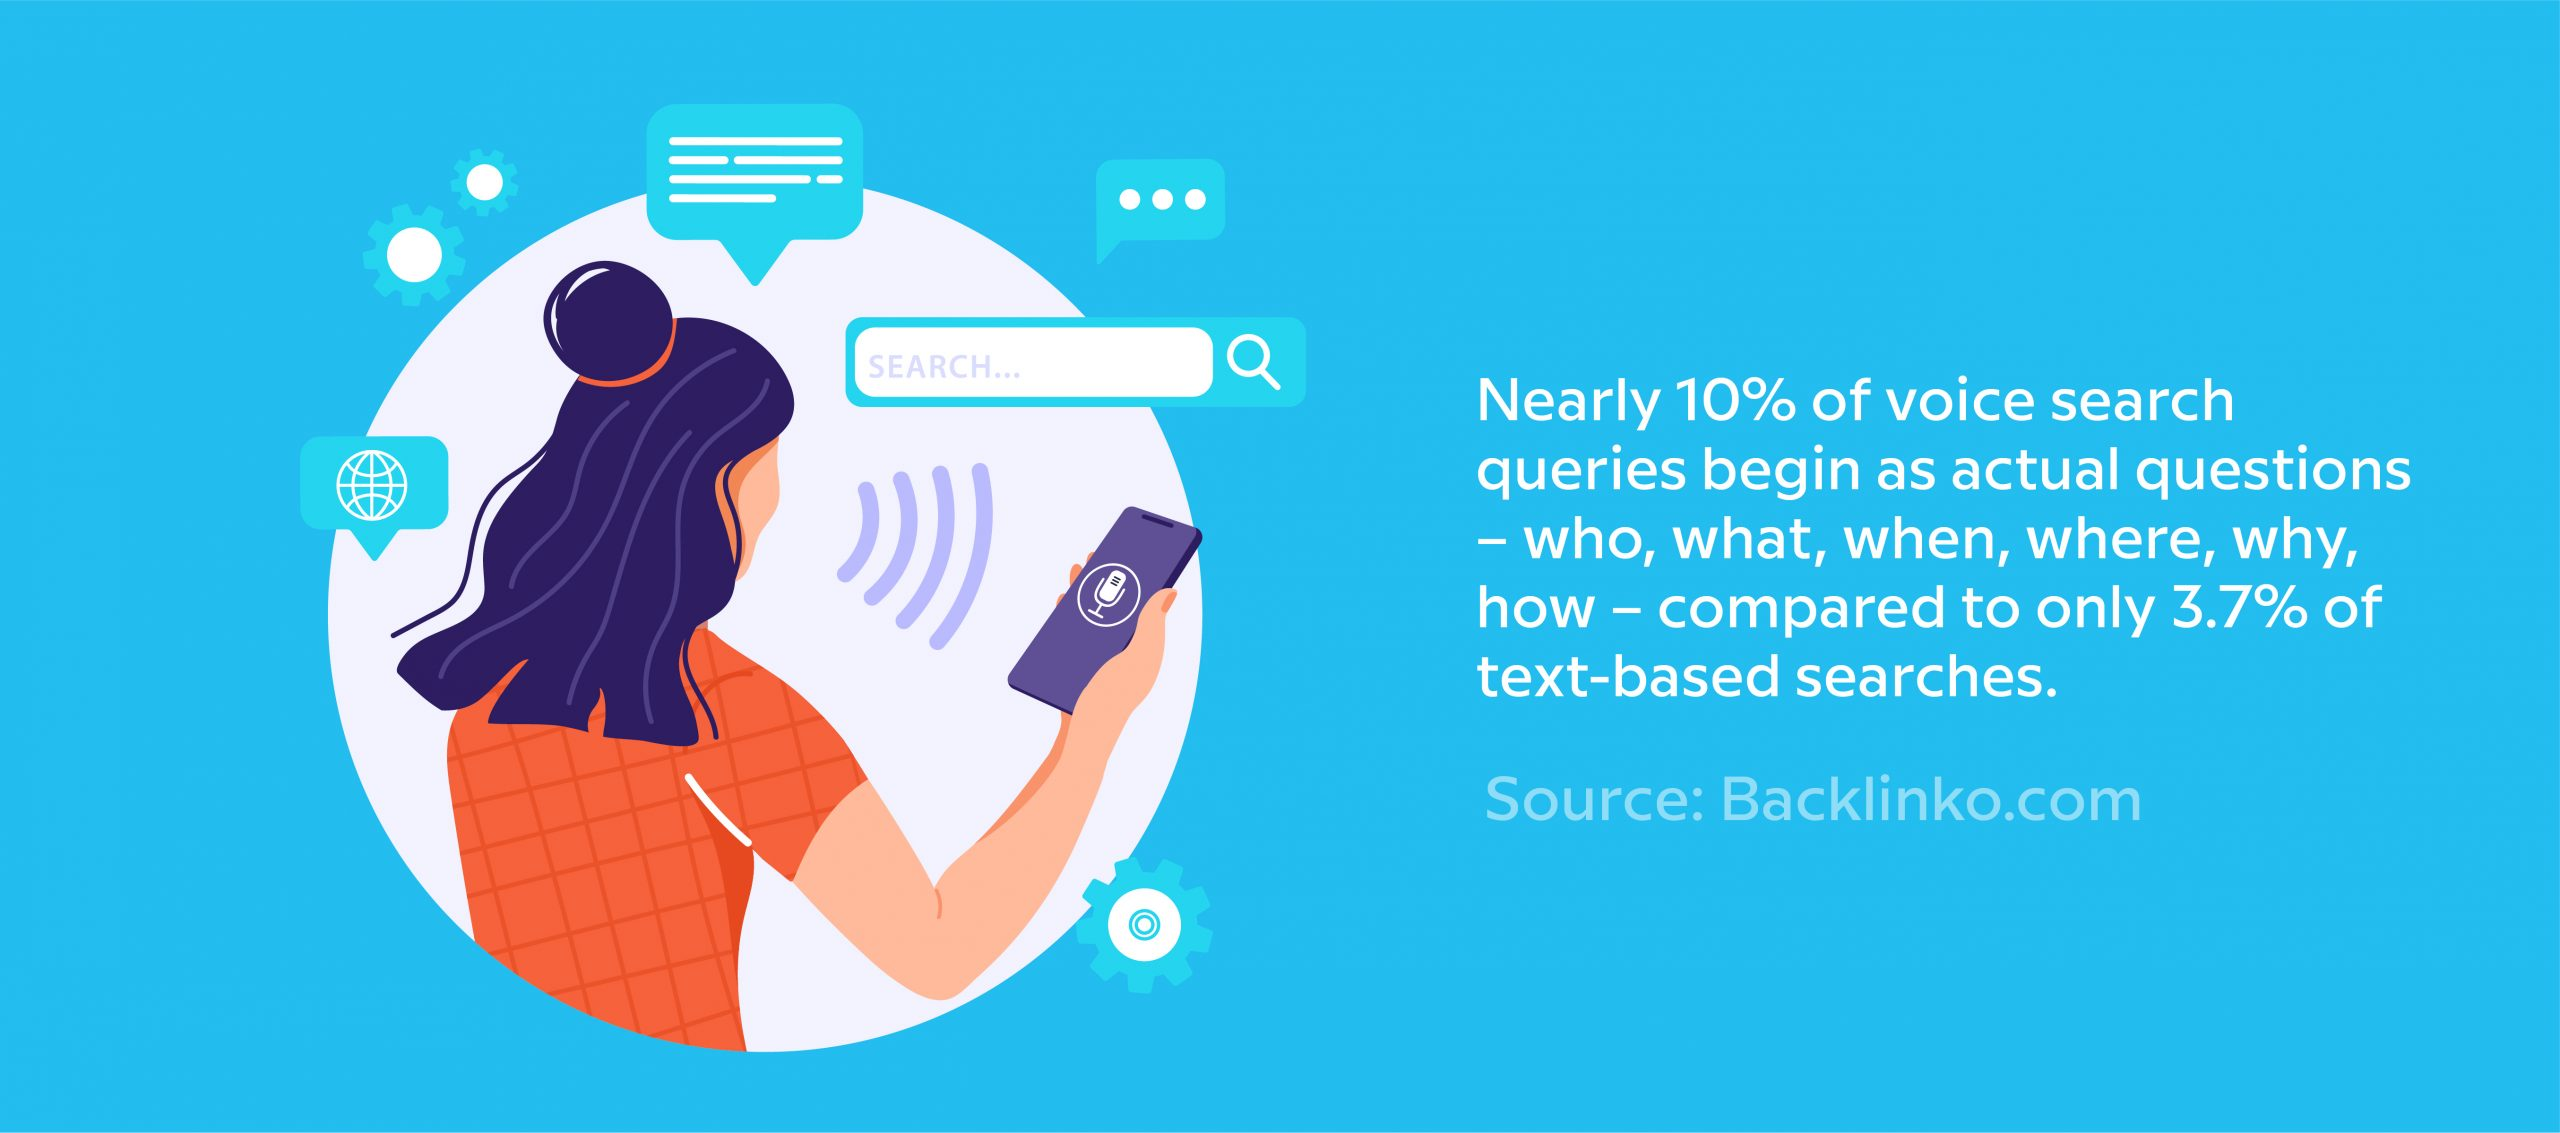 Nearly 10% of voice search queries begin as actual questions - who, what, when, where, why, who - compared to only 3.7% of text-based searches.